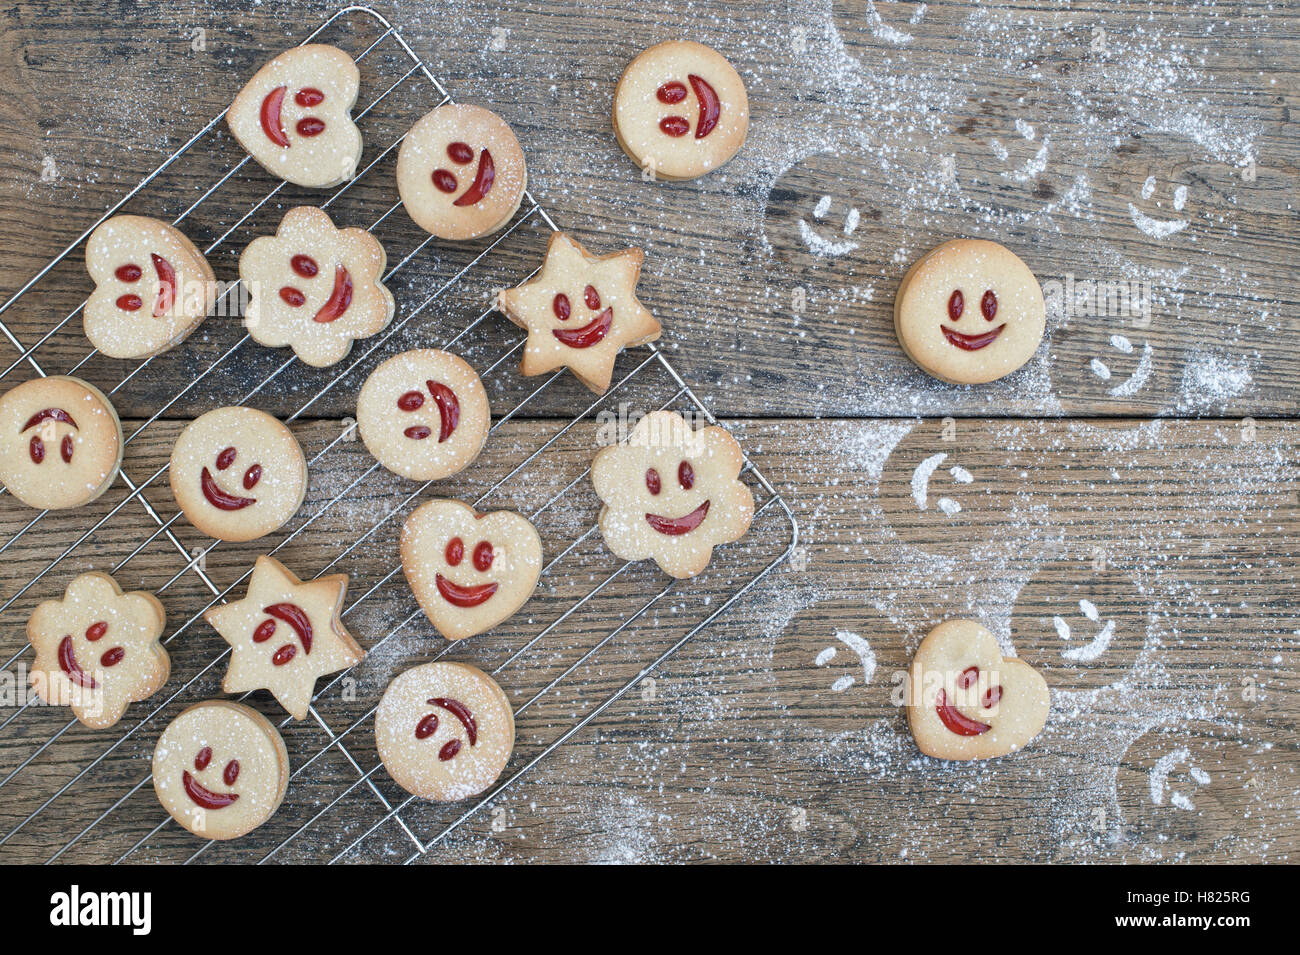 Homemade Jammie Dodgers. Smiling face biscuits and icing sugar impressions on wood - Stock Image